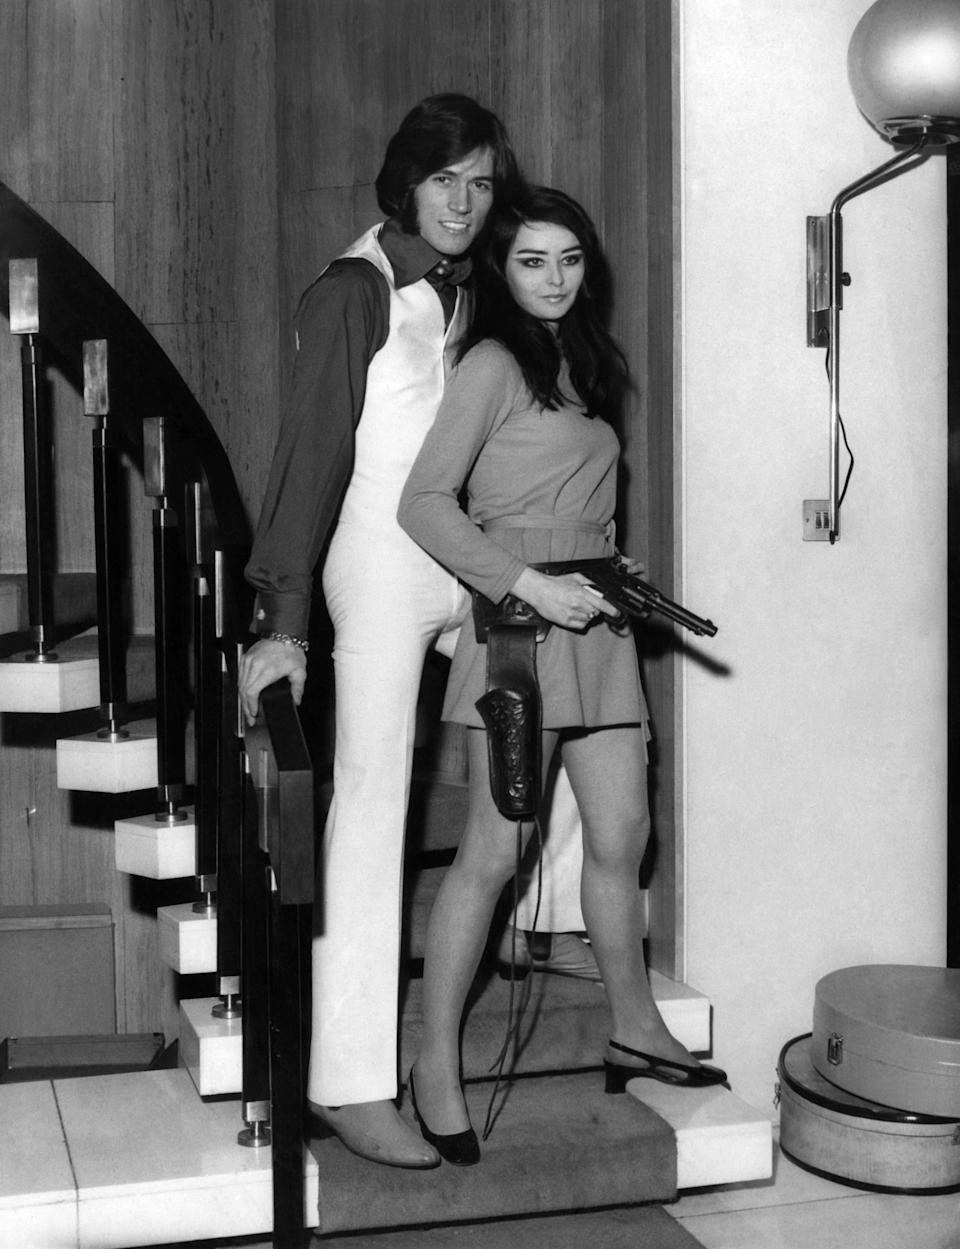 Barry Gibb pictured at home with his girlfriend Linda Gray, posing with a model Colt 0.45 on the staircase at his home. December 1968. (Photo by Daily Mirror/Mirrorpix/Mirrorpix via Getty Images)